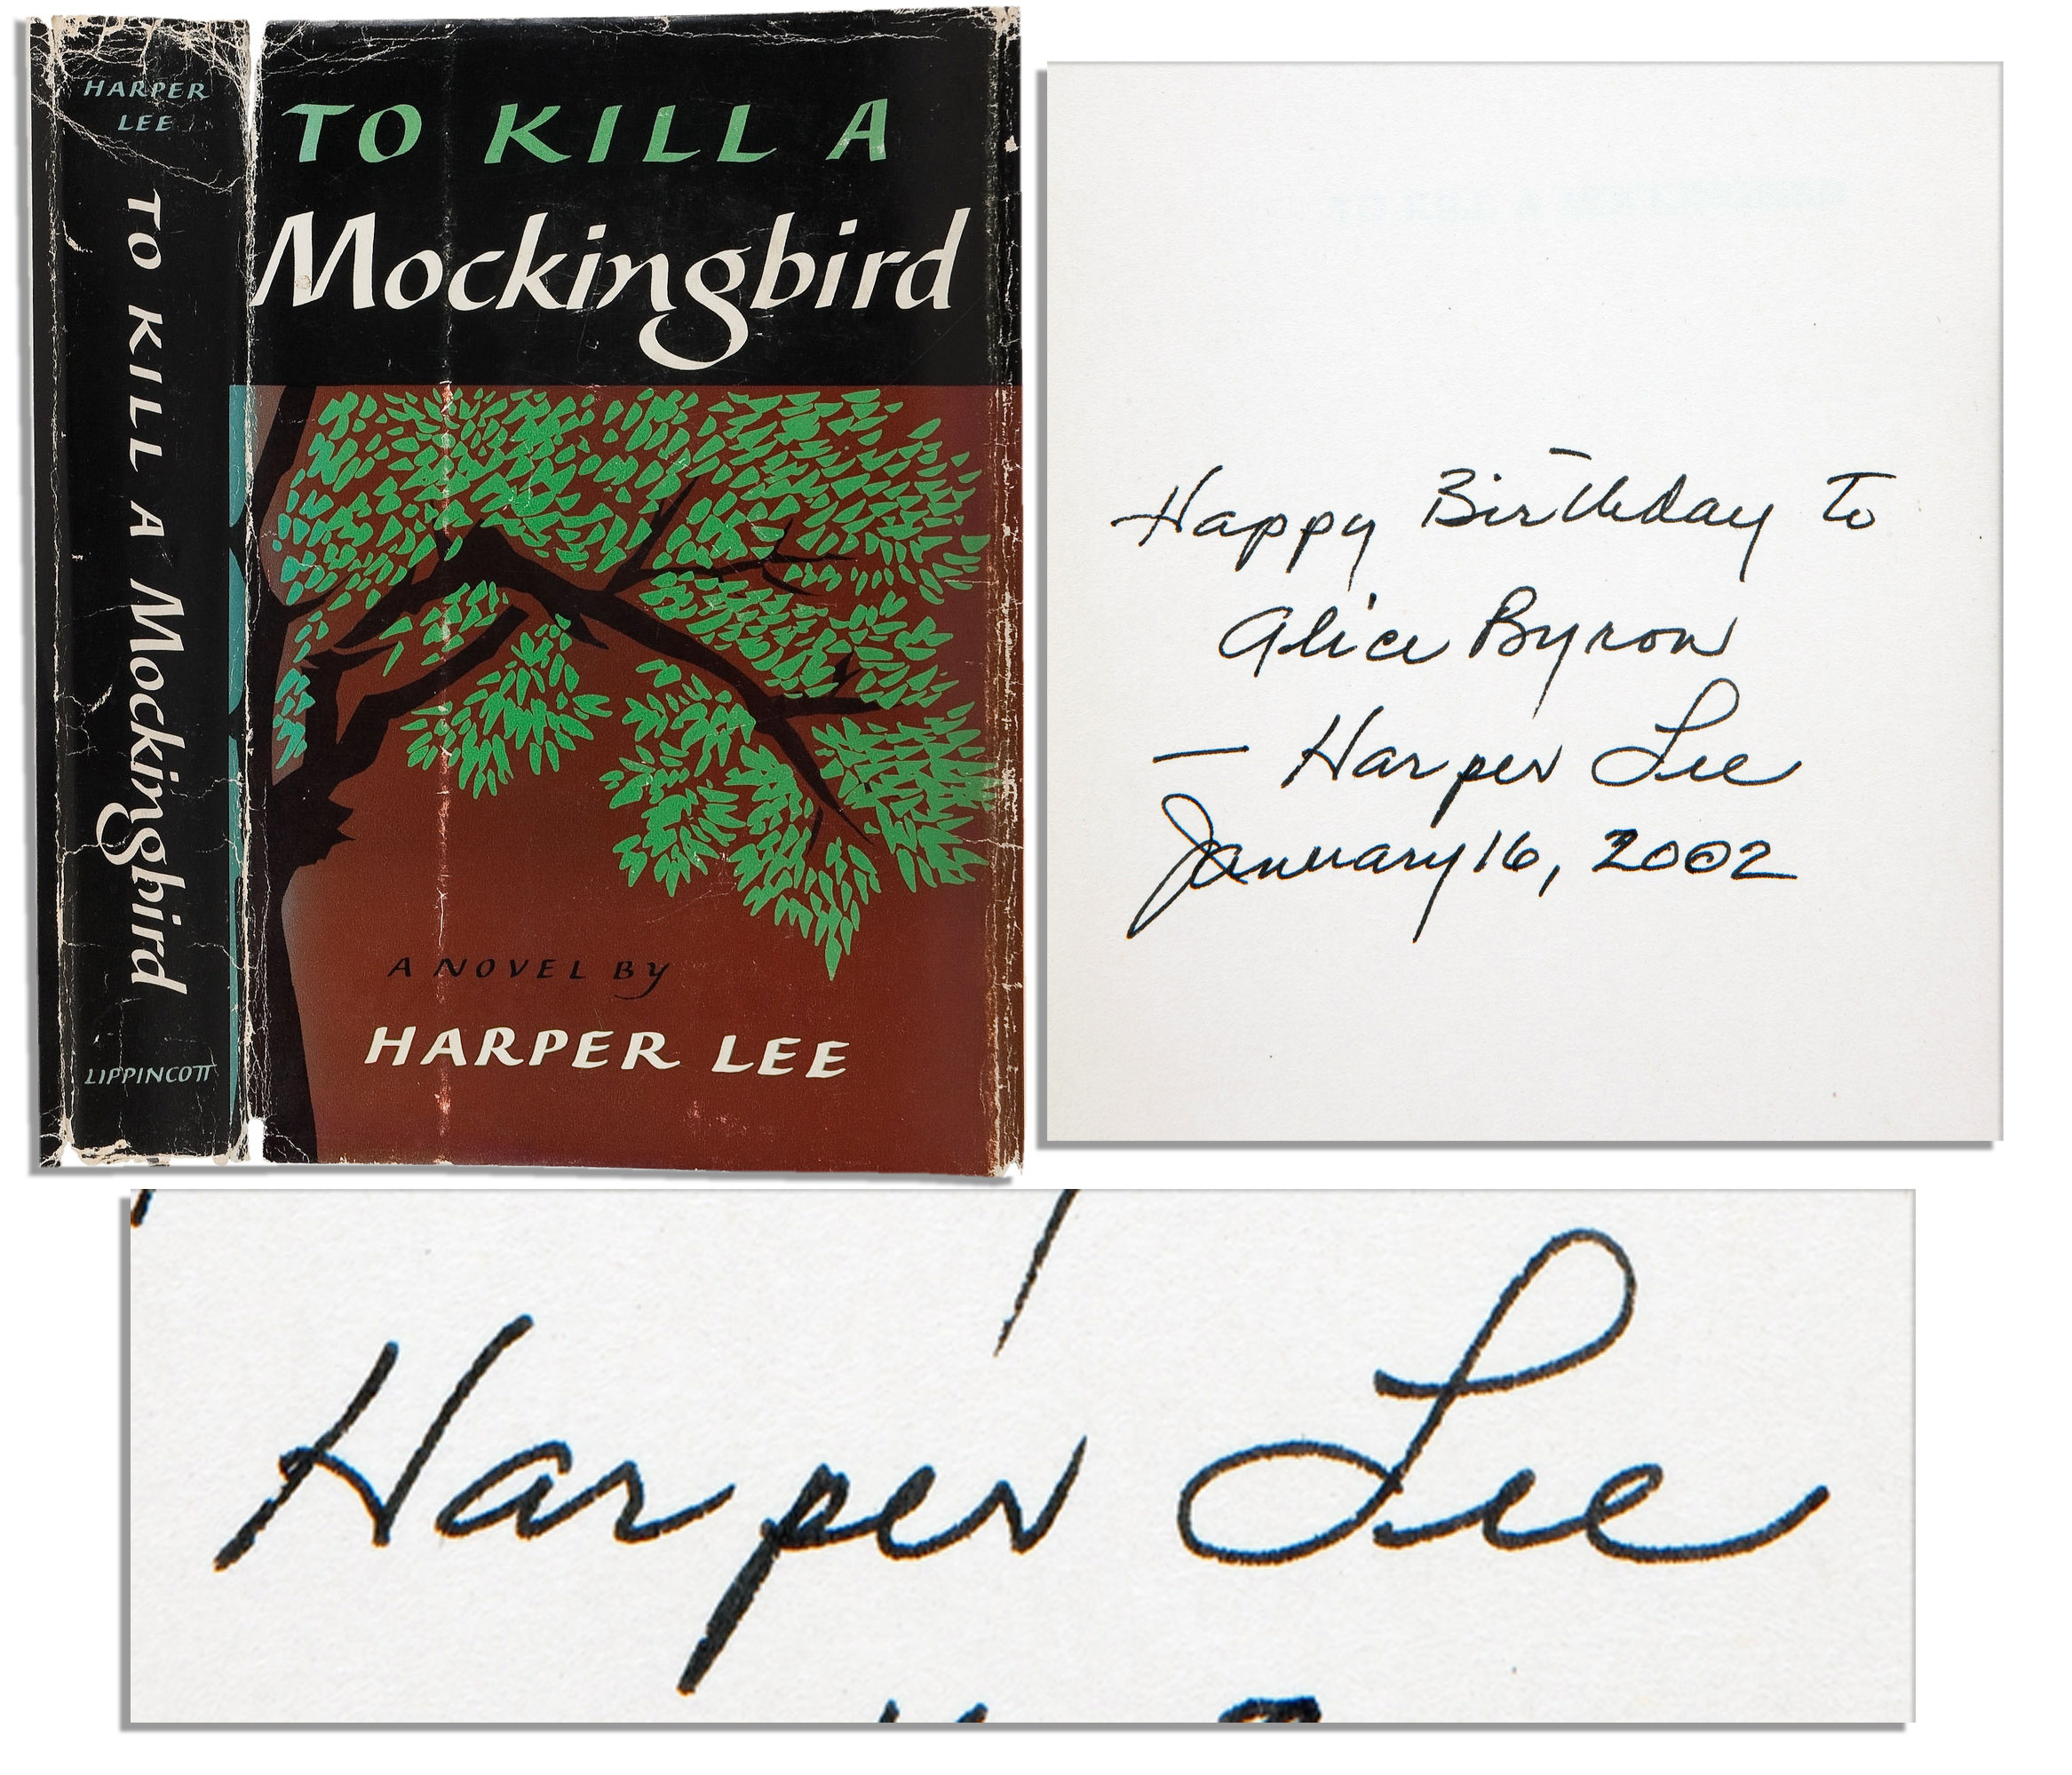 Harper Lee Signed First Edition of Her Pulitzer Prize Winning Work ``To Kill A Mockingbird``